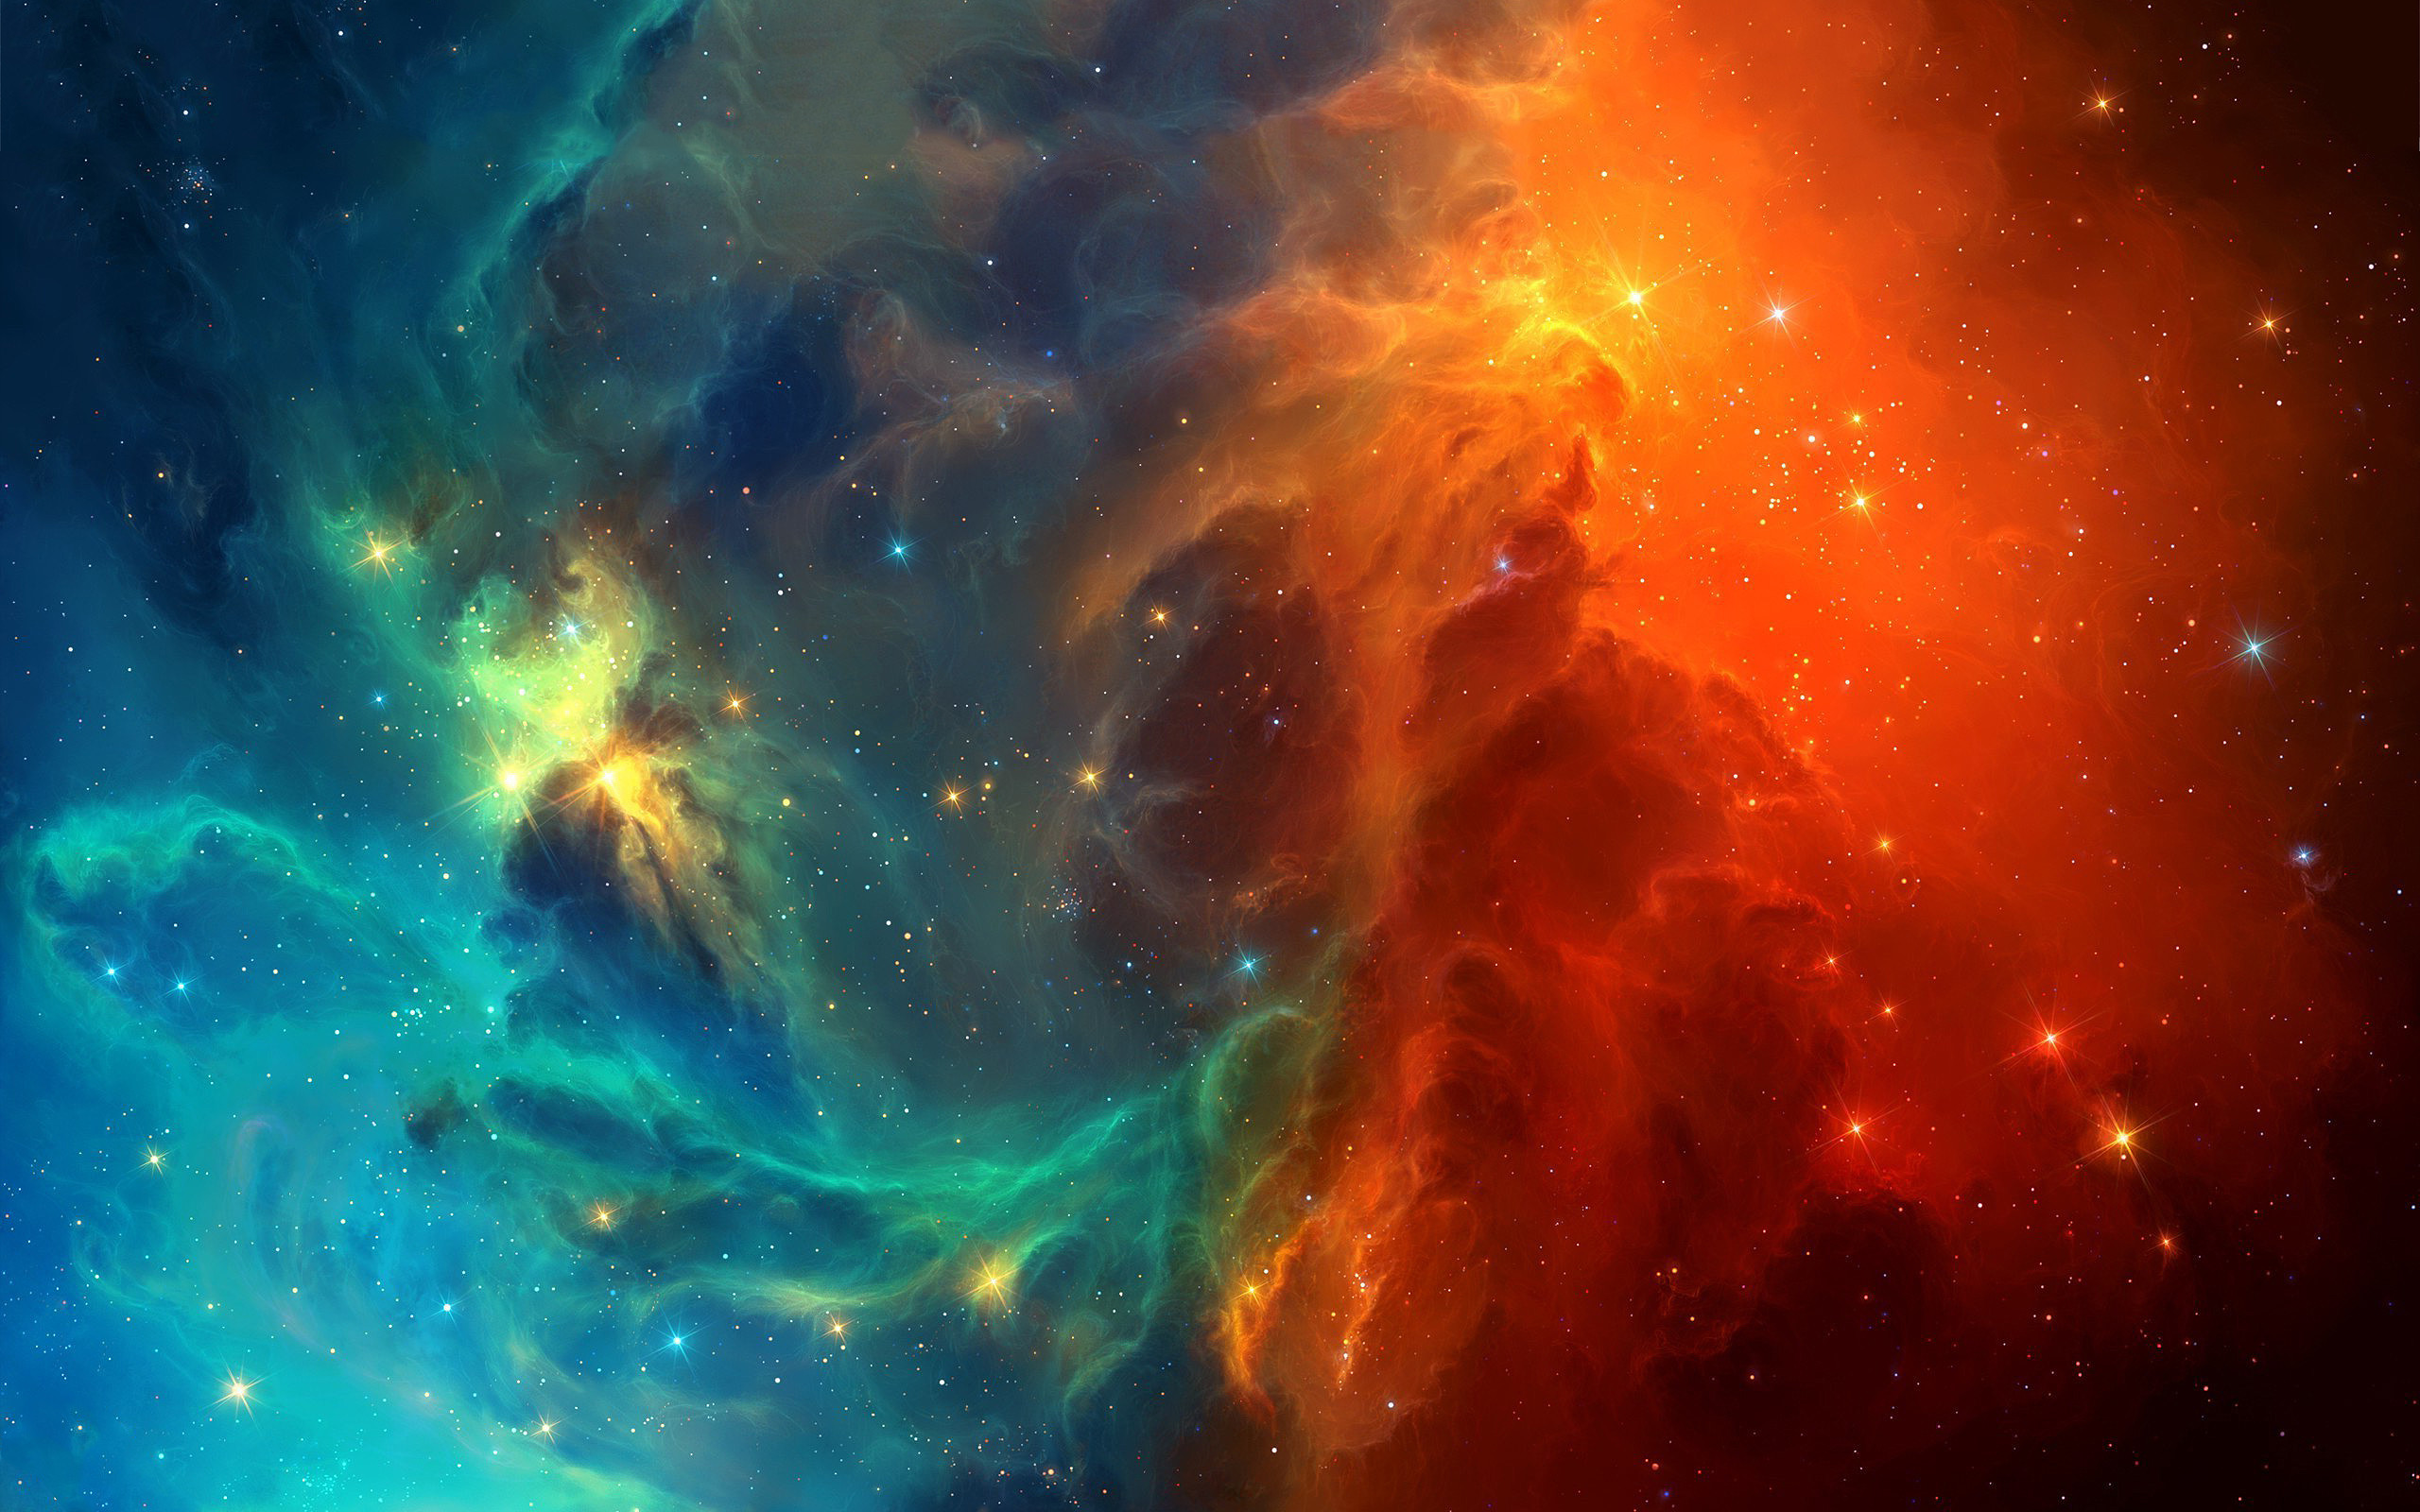 Space nebula stars wallpapers pictures photos images